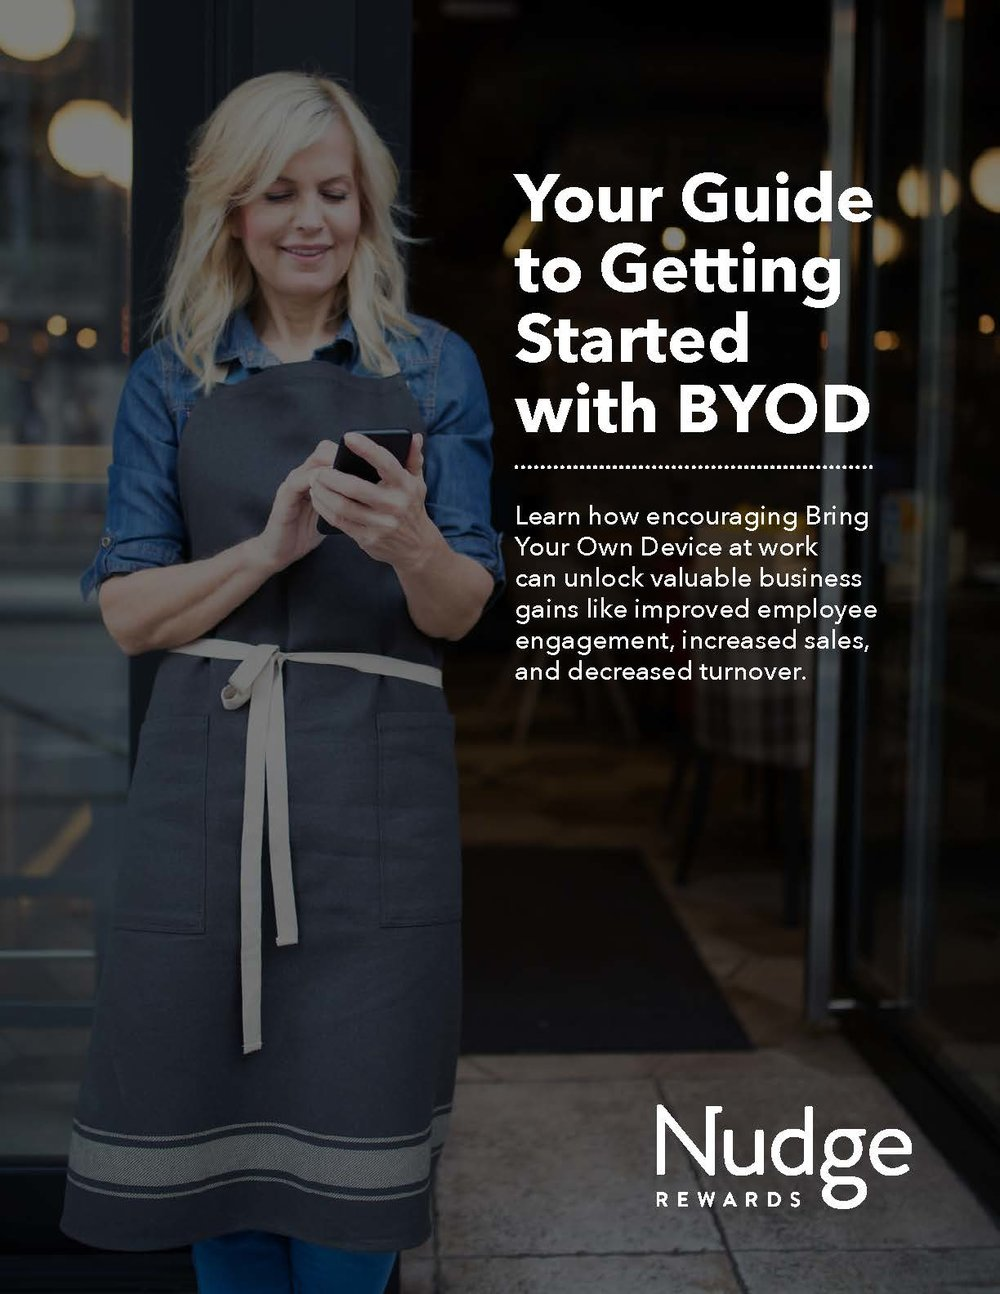 BYOD-guide-to-getting-started.jpg